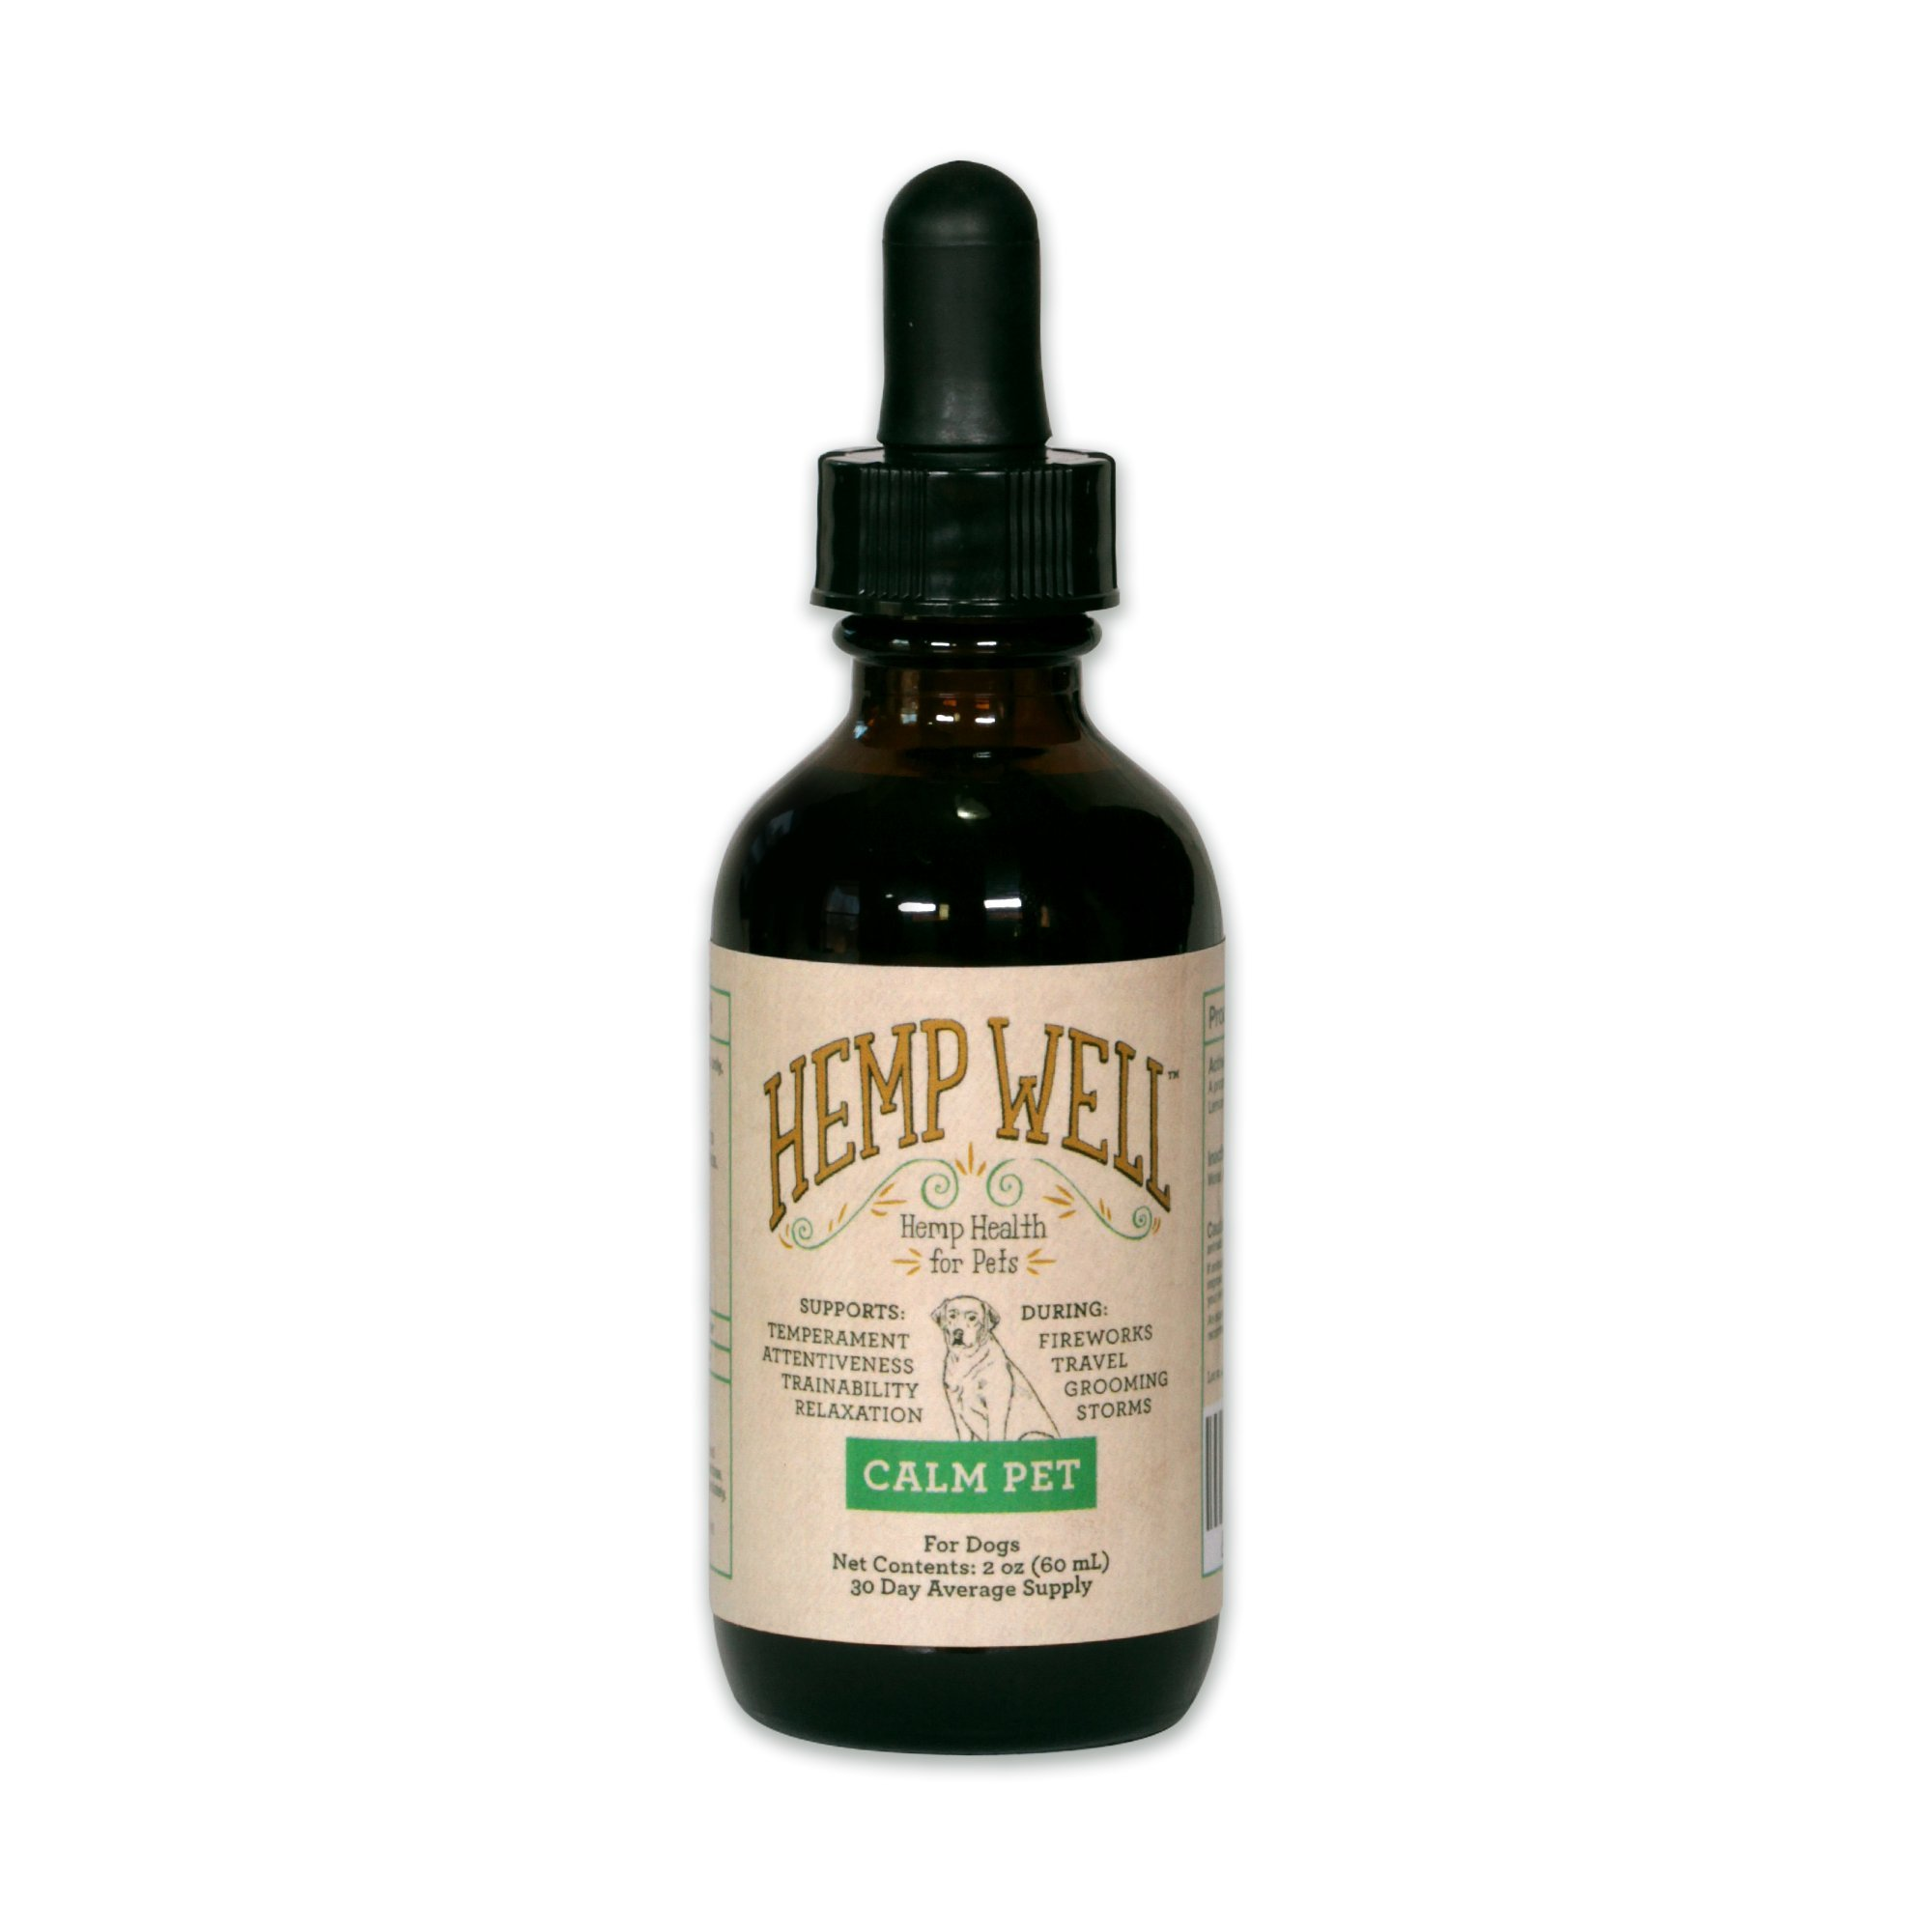 CALM PET (2 oz) - Hemp Well helps keep your pet calm and relaxed. Stress, Temperament, Trainability, Relaxation and more. Natural and Organic Relief For Dogs.